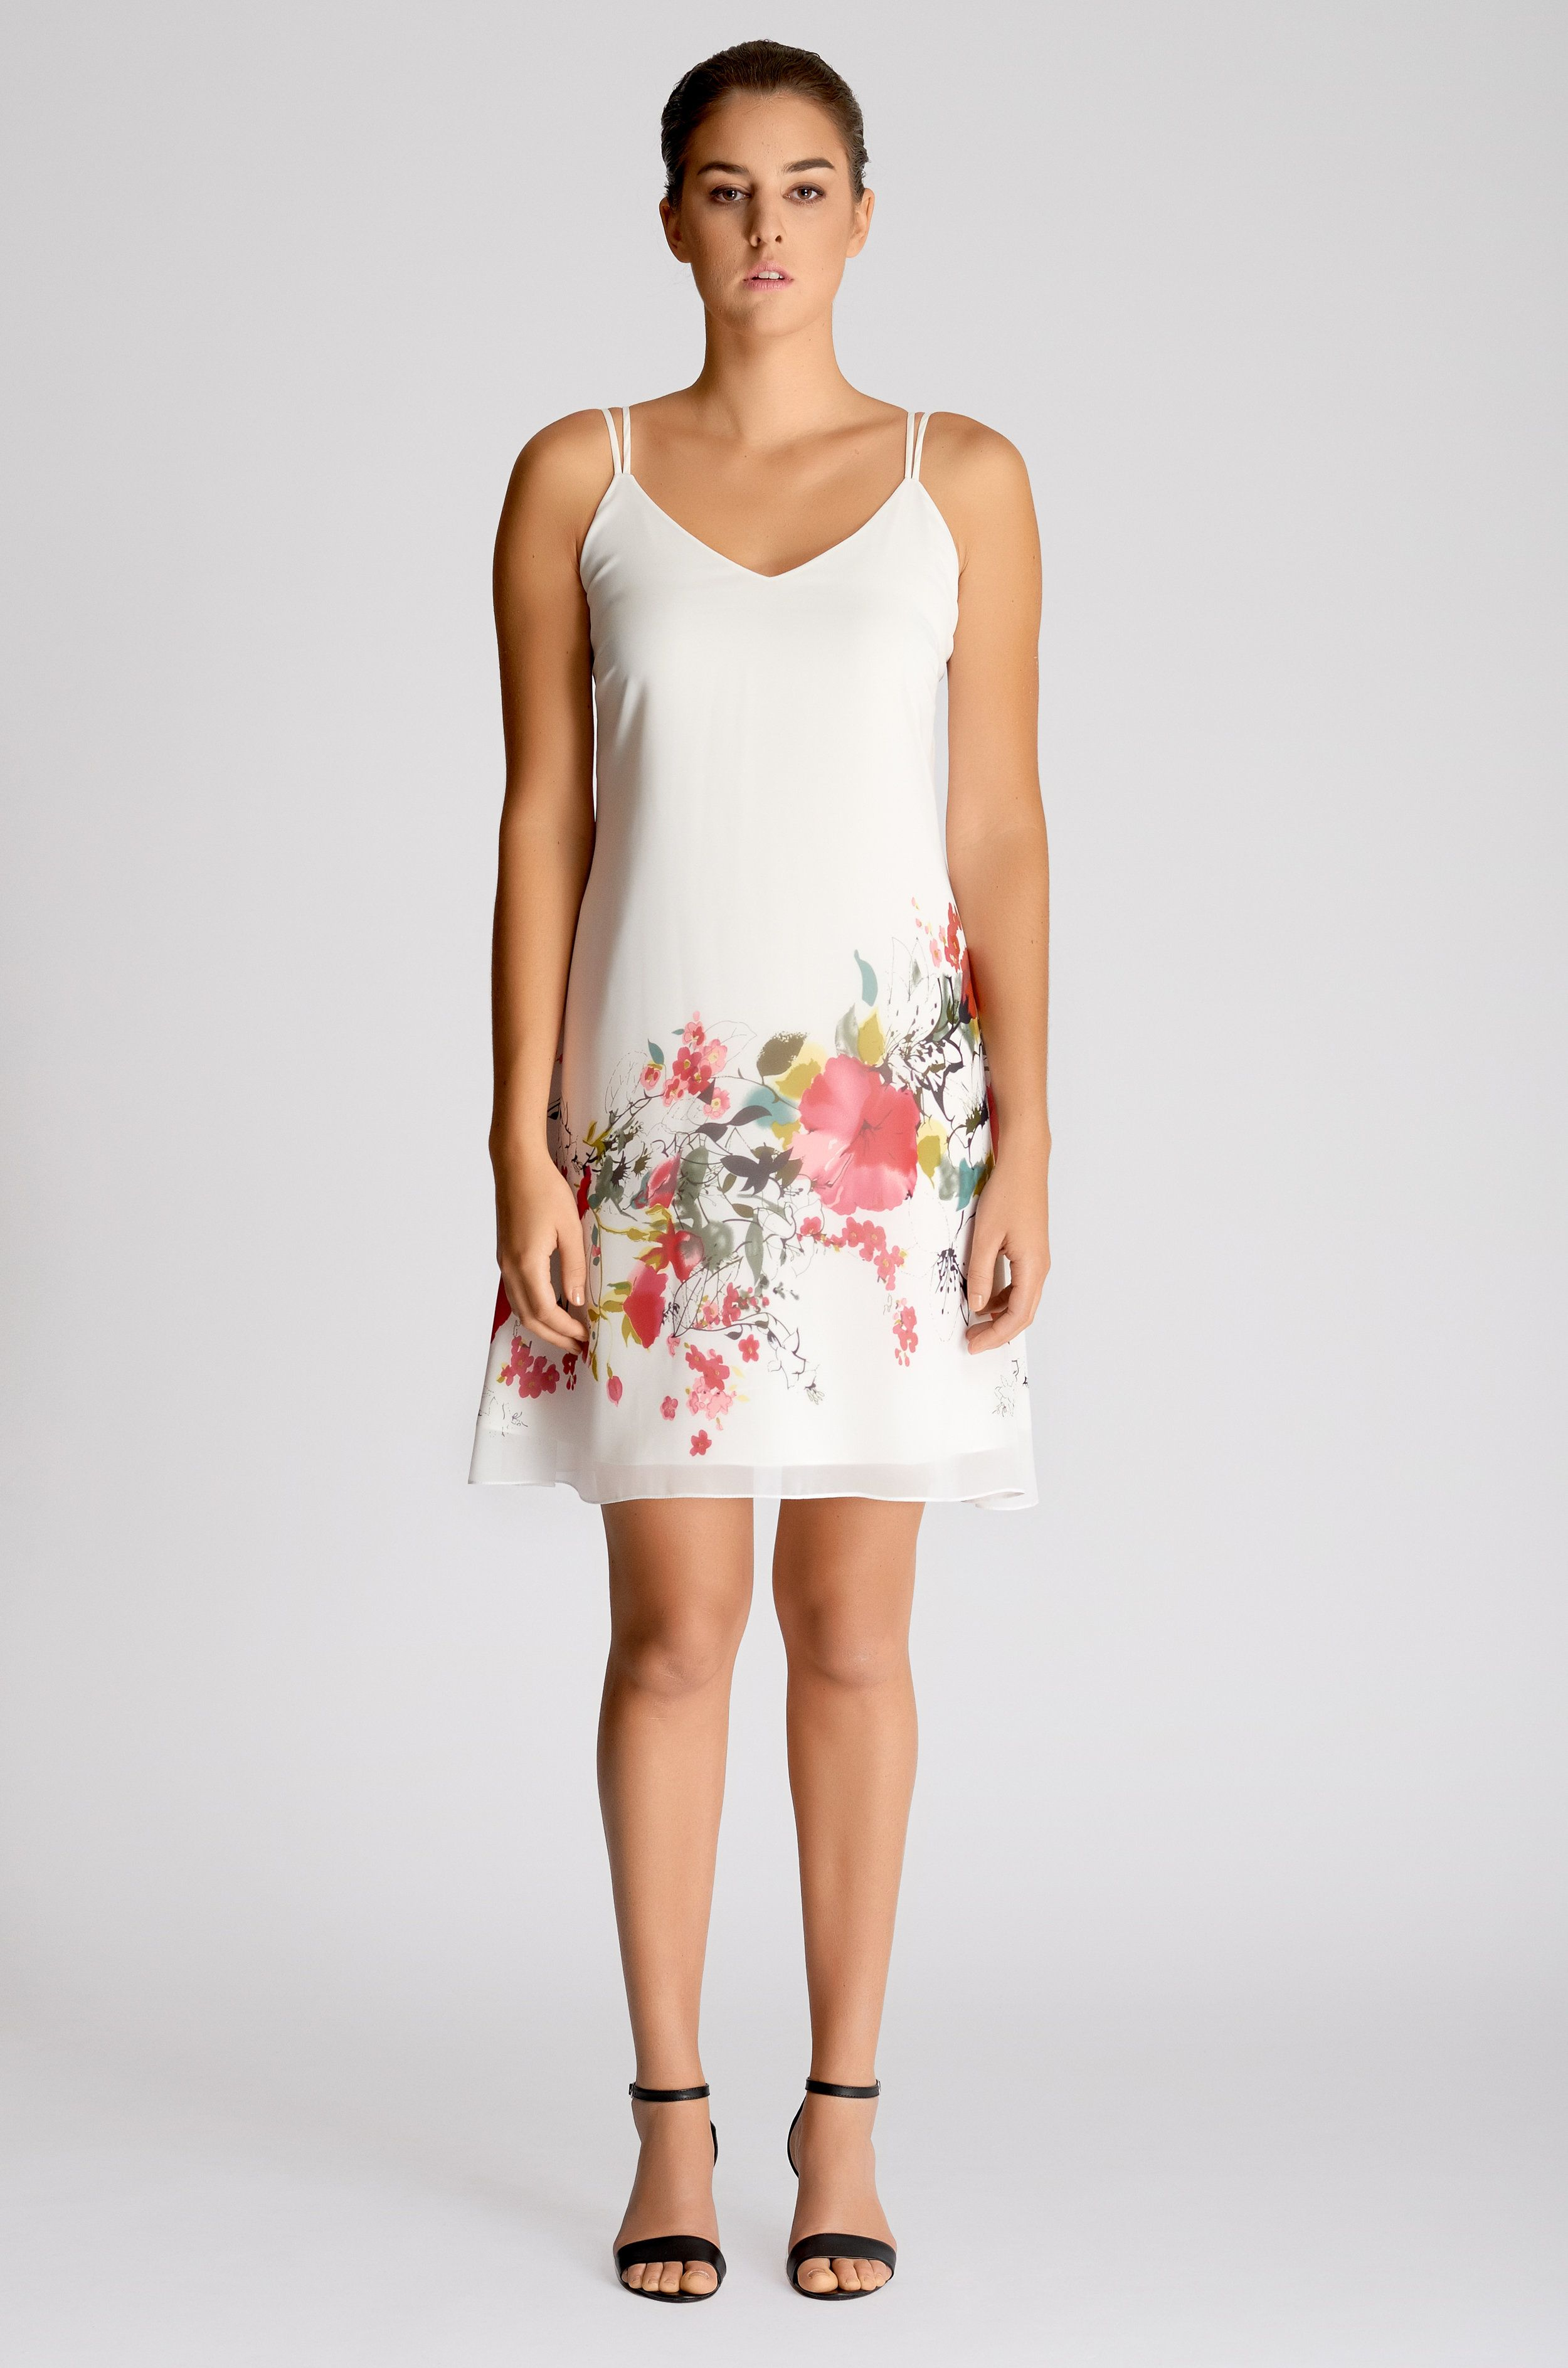 76f0c2e2f871 WHITE STRAPPY HAND-PAINTED FLORAL SHIFT DRESS  245.00